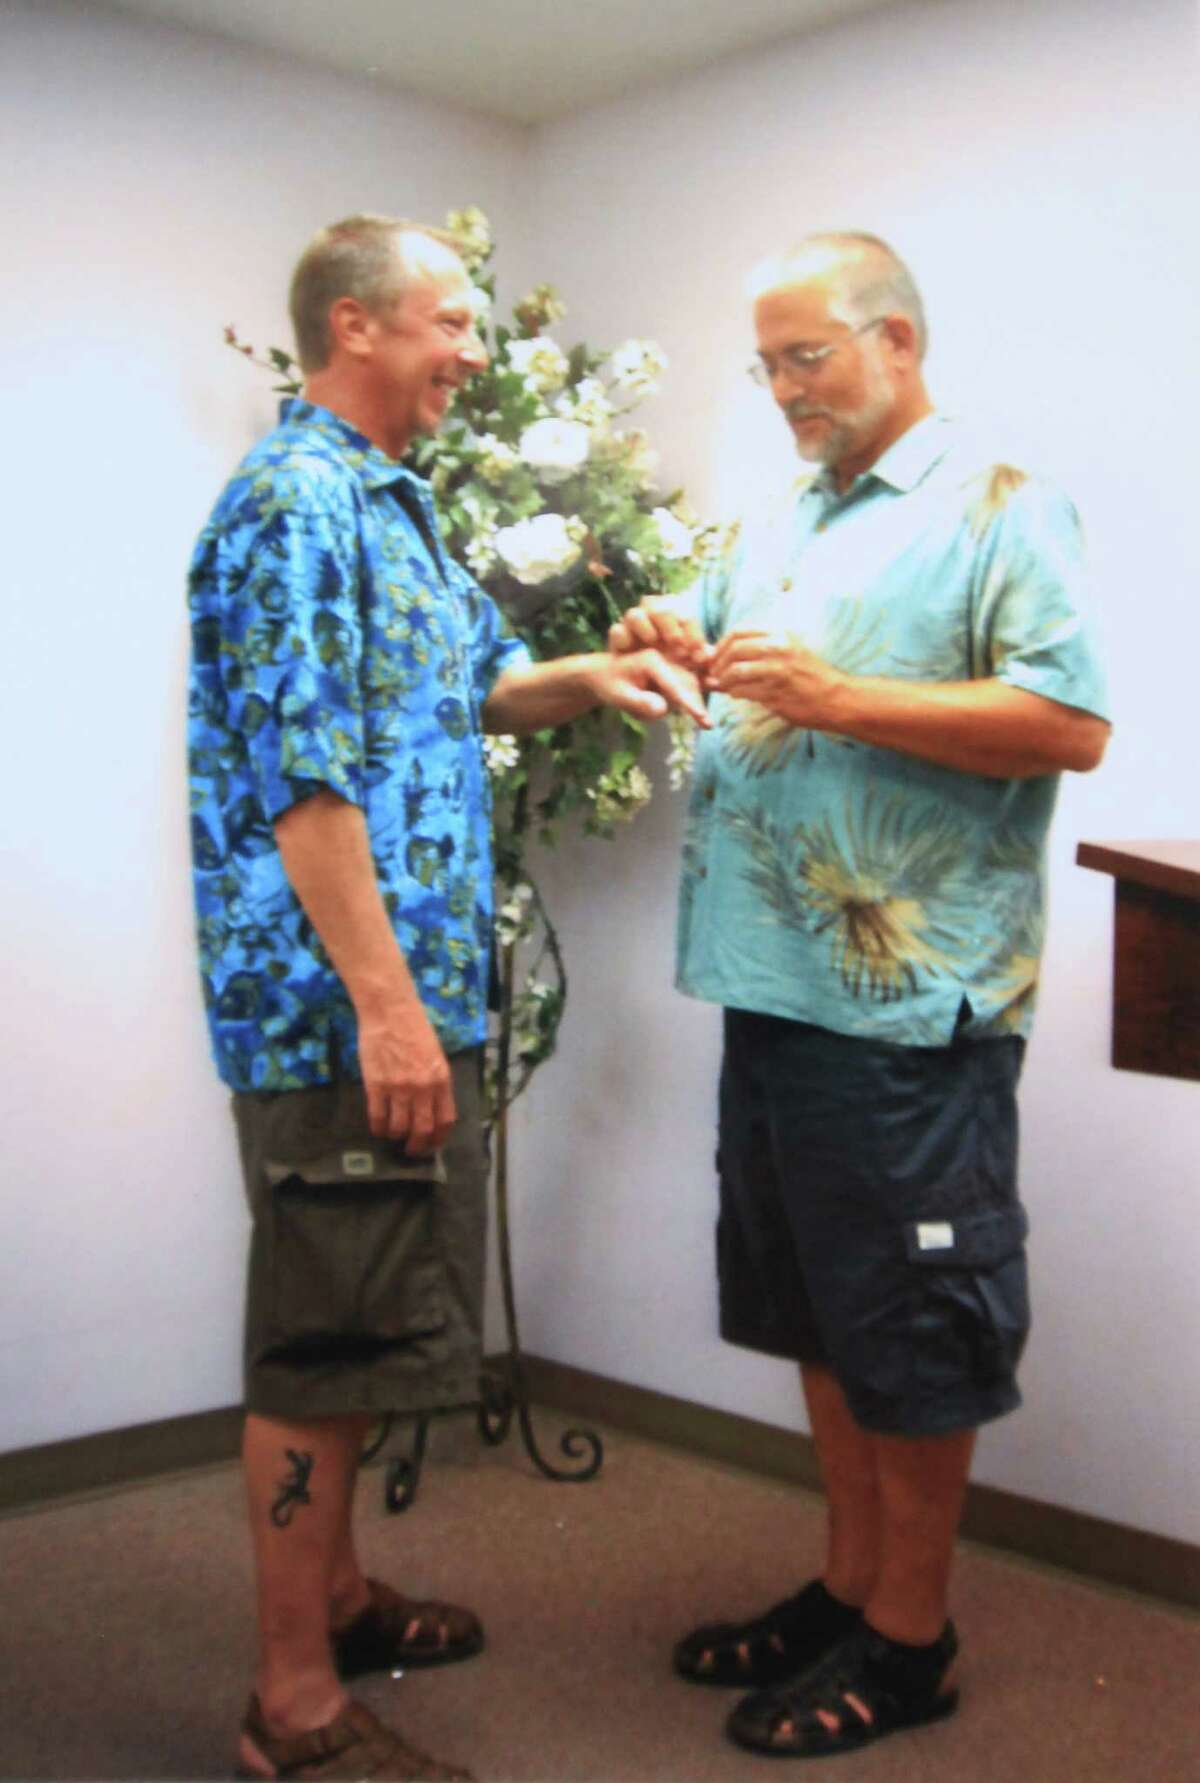 Rains (left) and Don Condit were married in 2008 at Condit's parents' home in Riverside County, but lived in Texas.